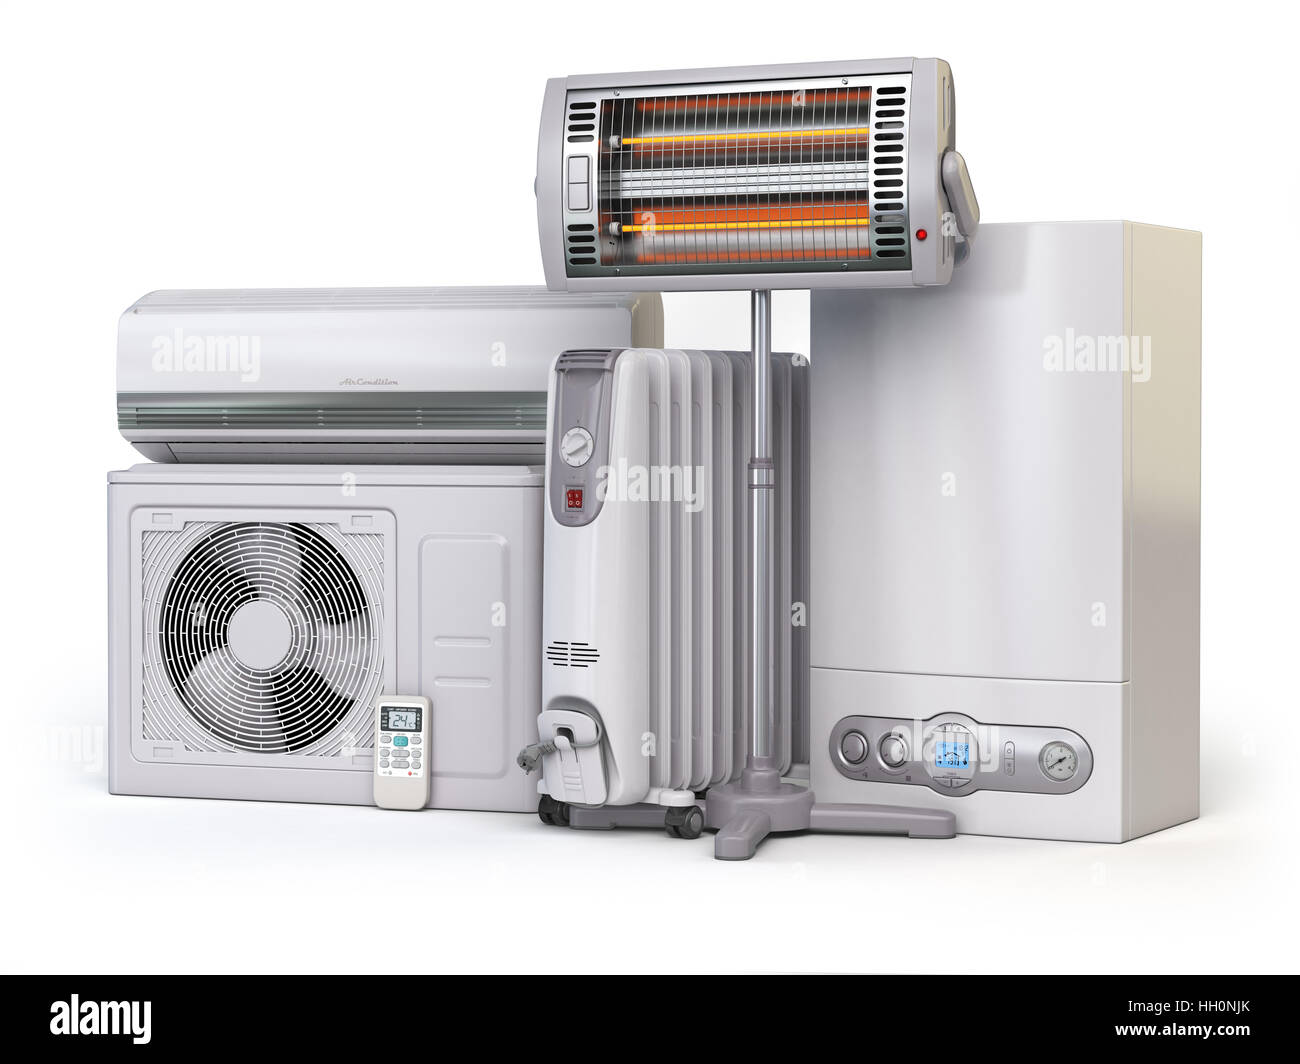 water heaters stock photos water heaters stock images alamy heating devices and climate equipment heating household appliances gas boiler air conditioner